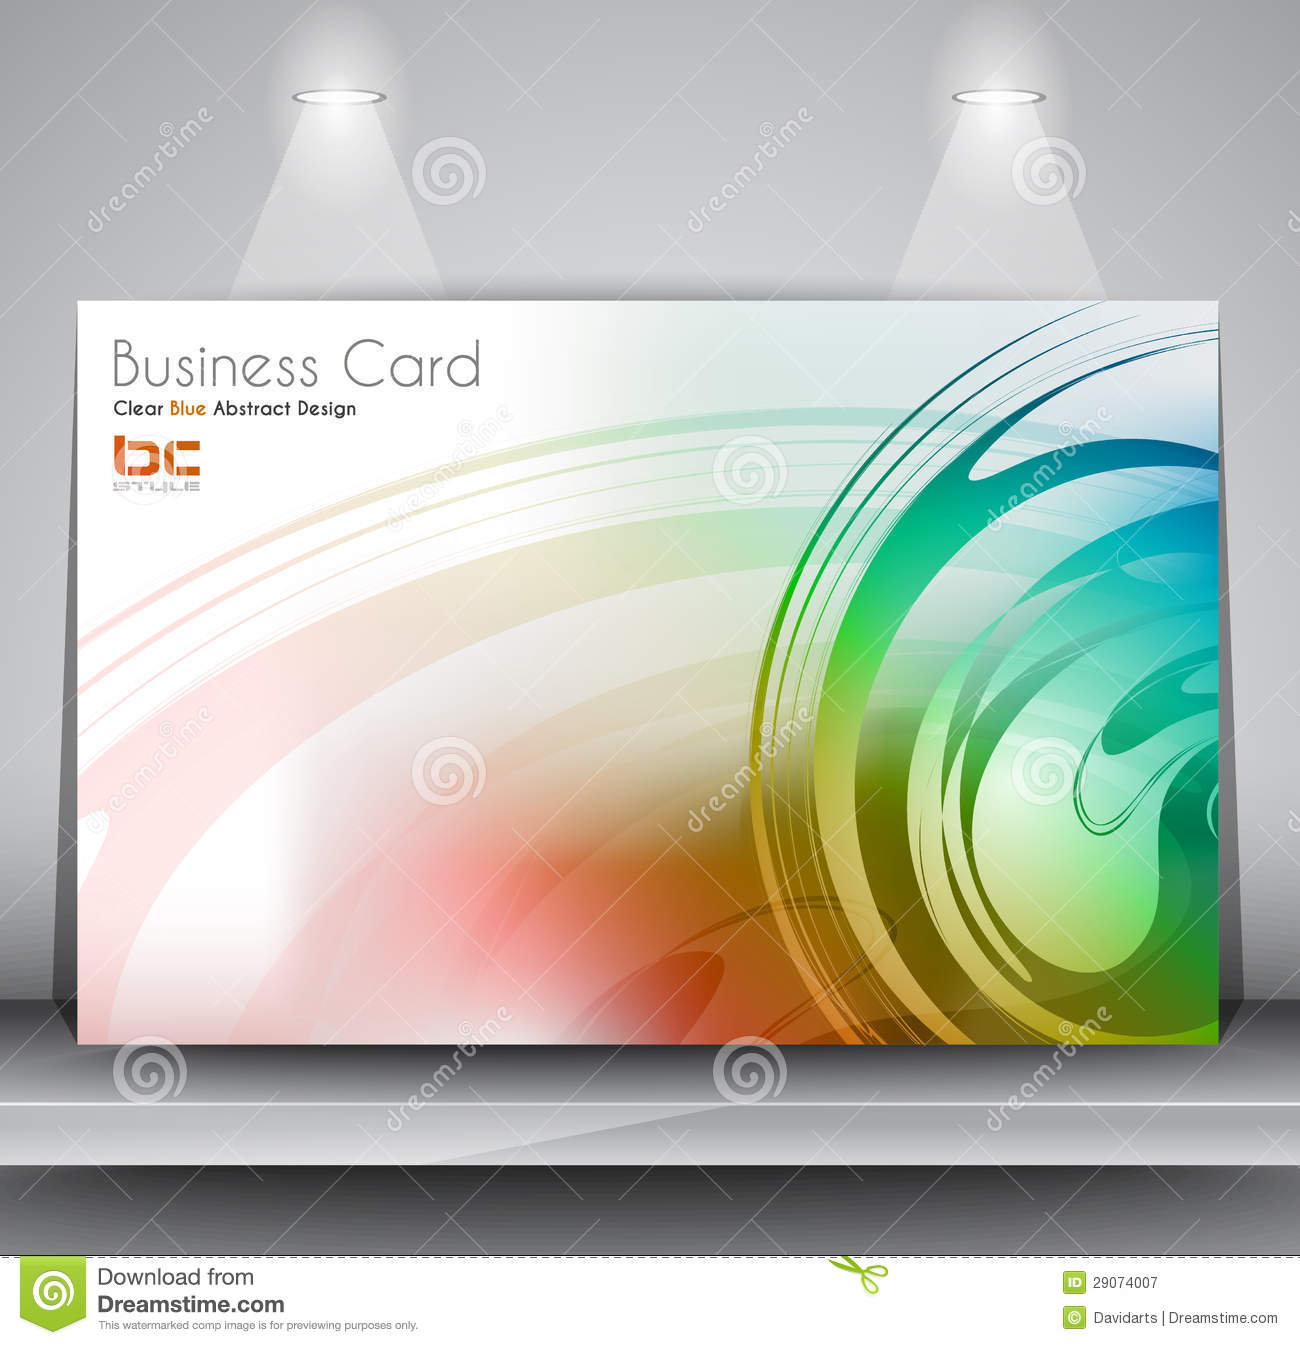 Elegant business card design template stock illustration elegant business card design template flashek Gallery